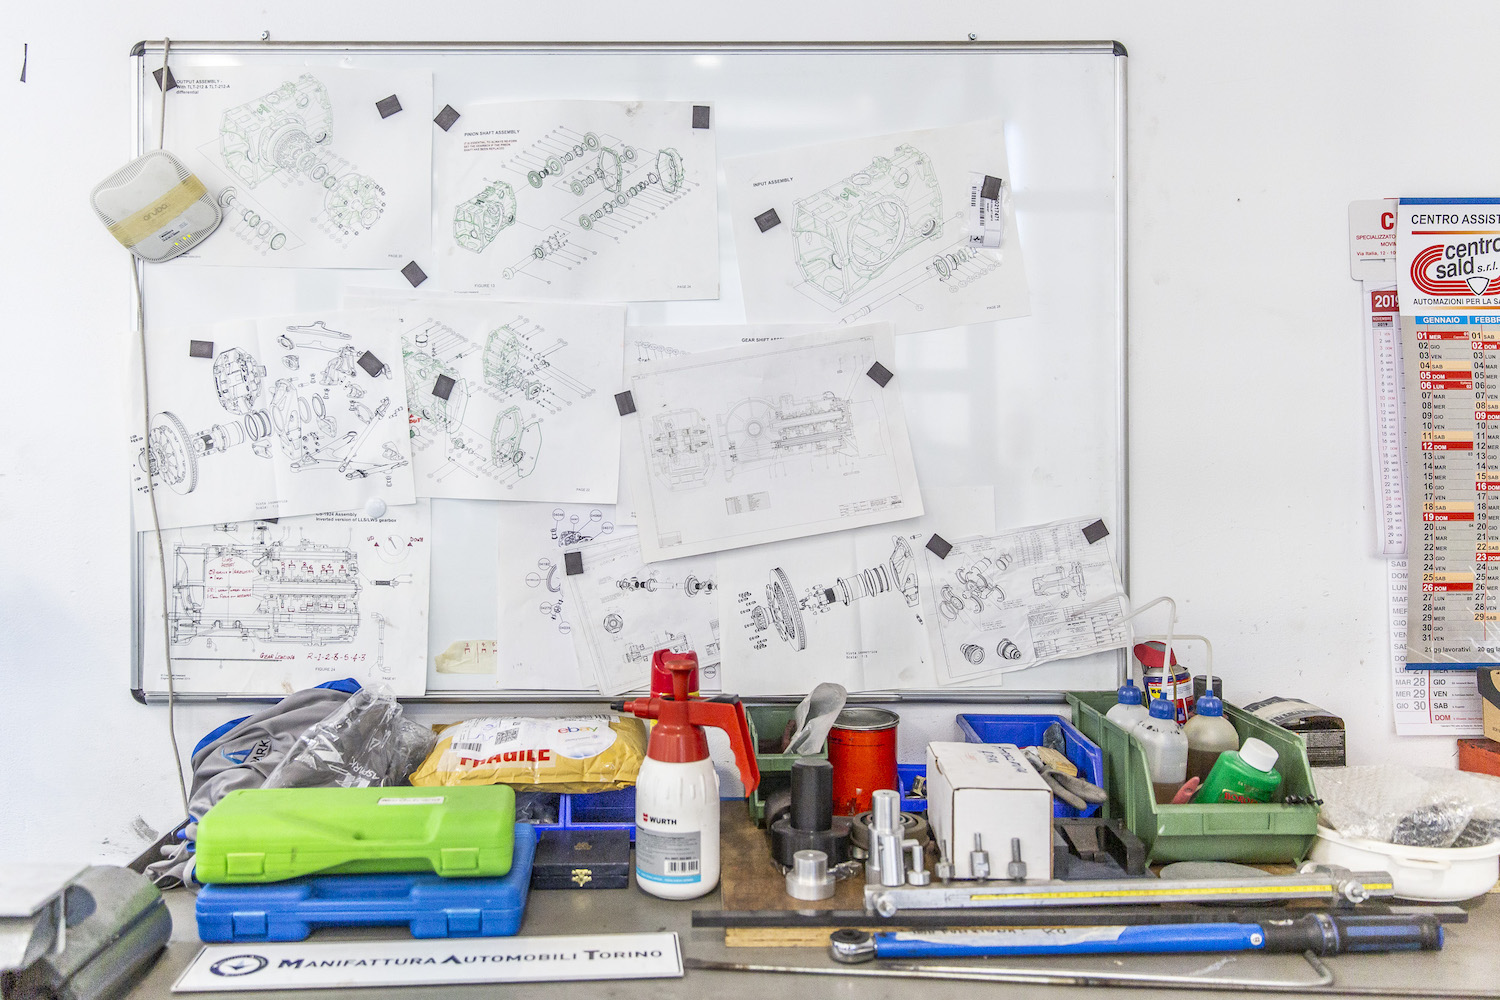 engine part assembly charts on whiteboard